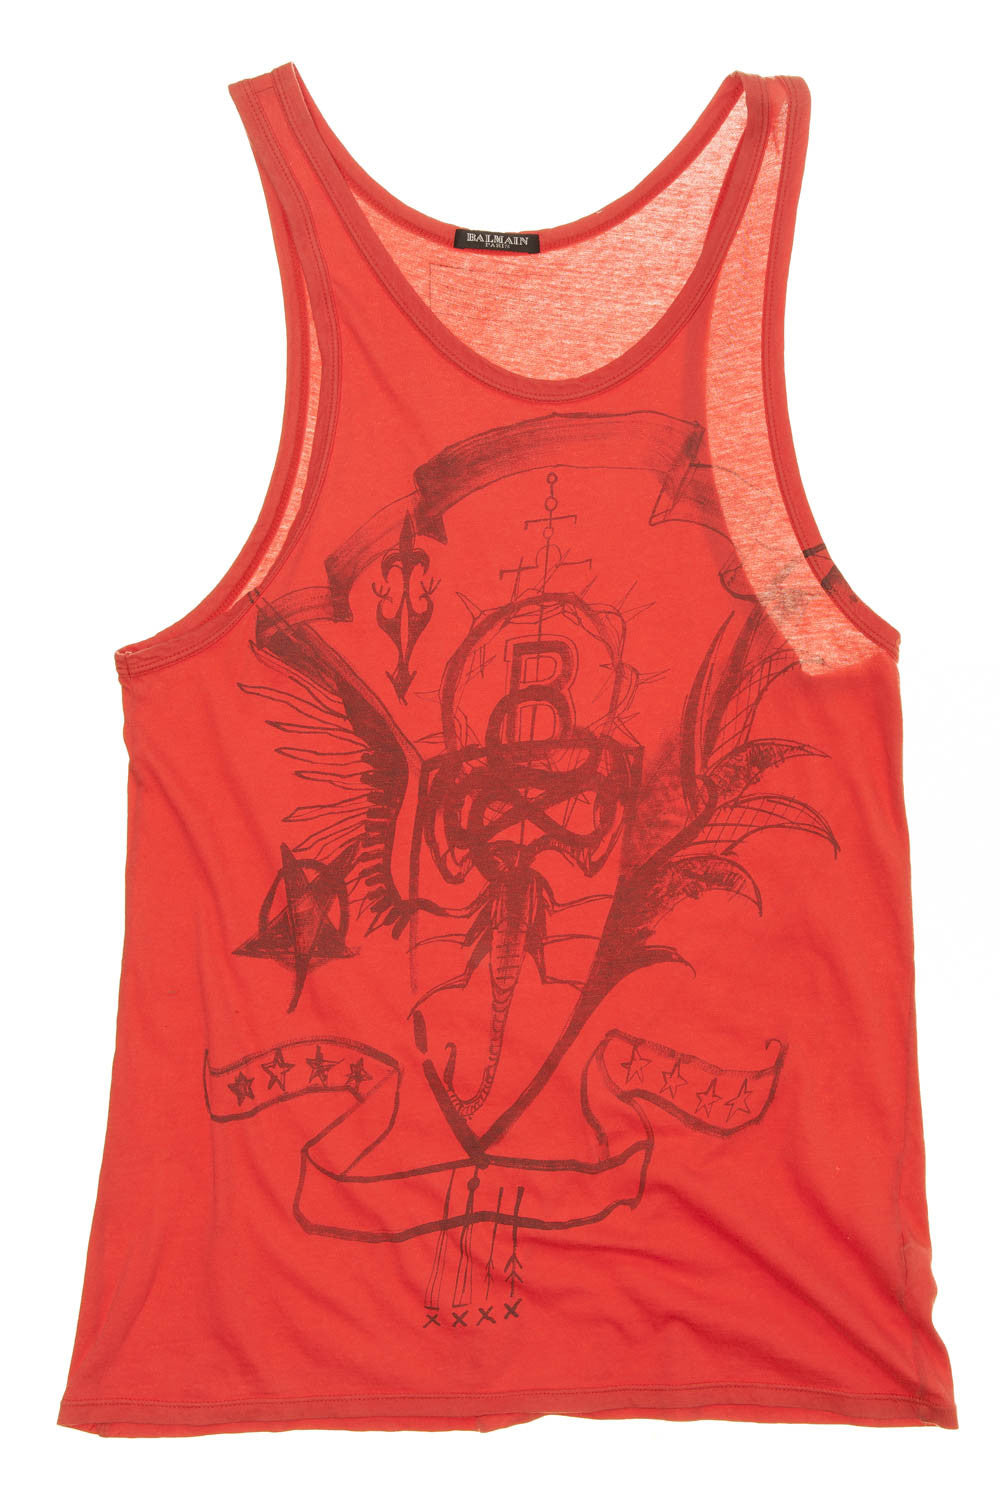 Balmain - Red Tank Top - FR 40